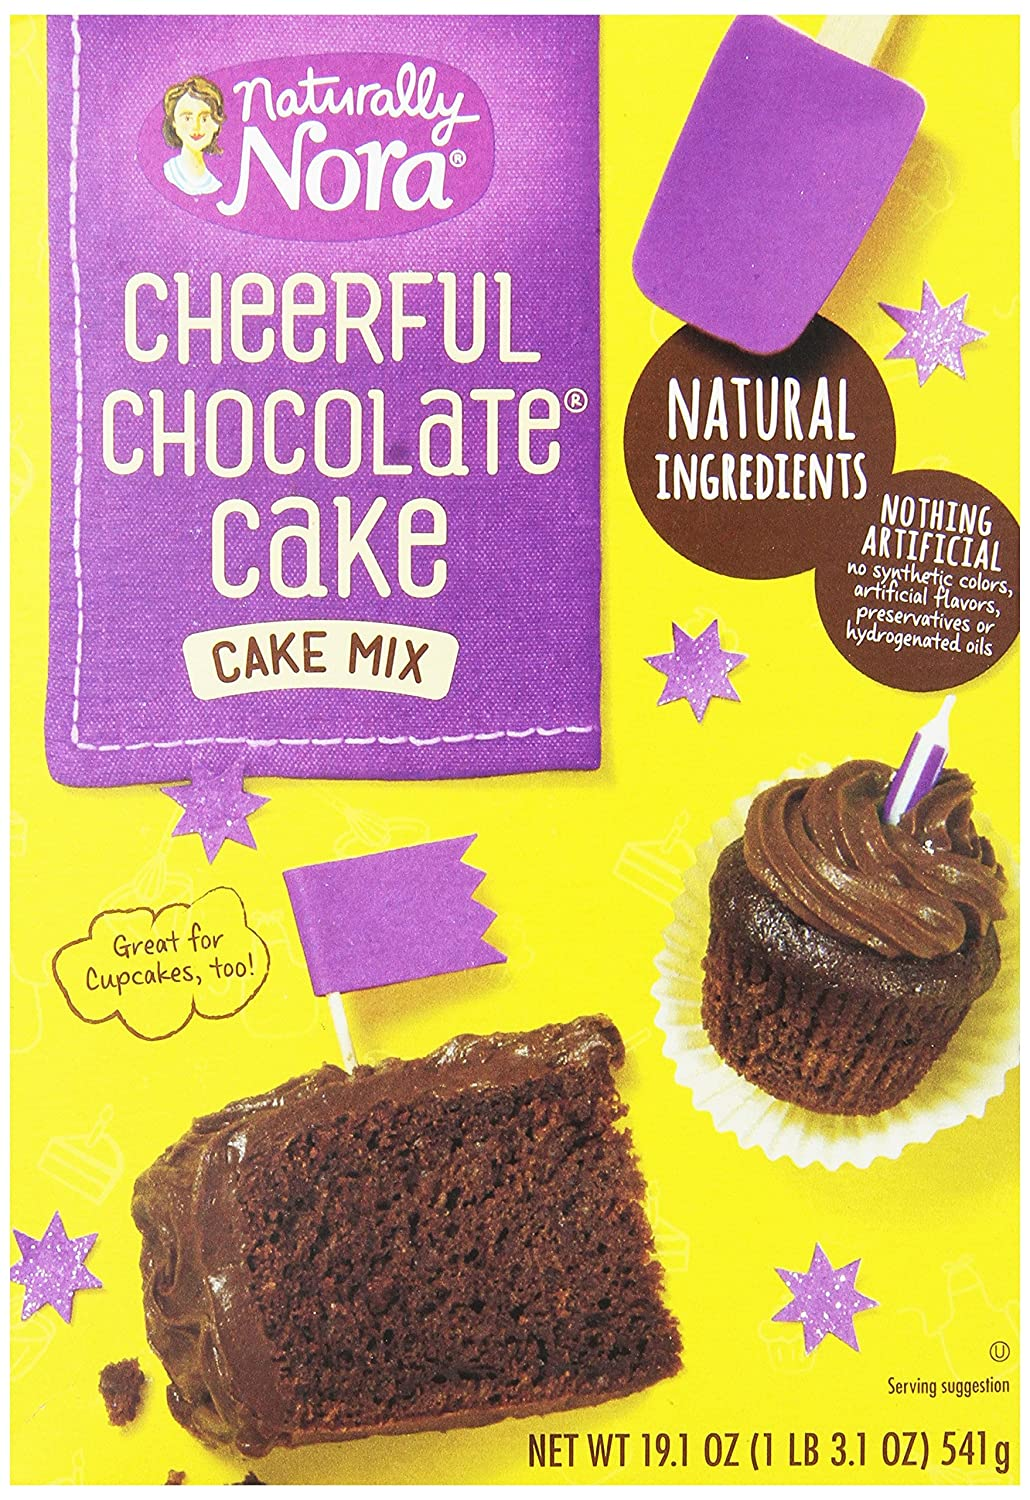 Naturally Nora Cheerful Chocolate Cake Mix 191 Ounce Kue Brownis By Nature Cakes Bali Boxes Pack Of 6 Vegan Grocery Gourmet Food